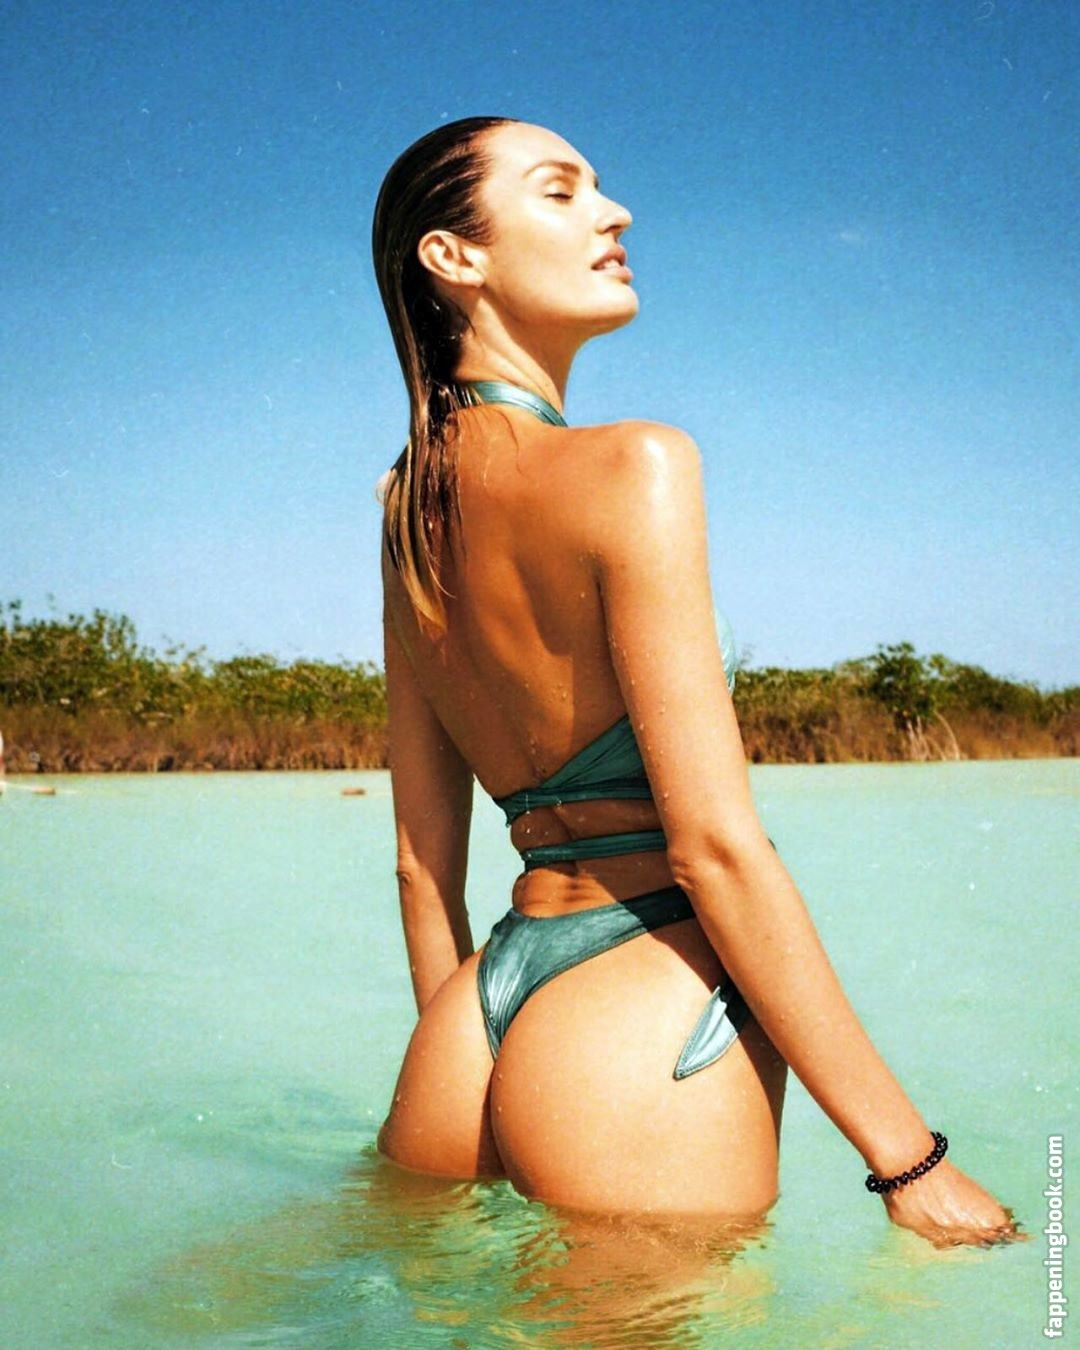 Analice Nicolau Fotos Sexy candice swanepoel nude, sexy, the fappening, uncensored